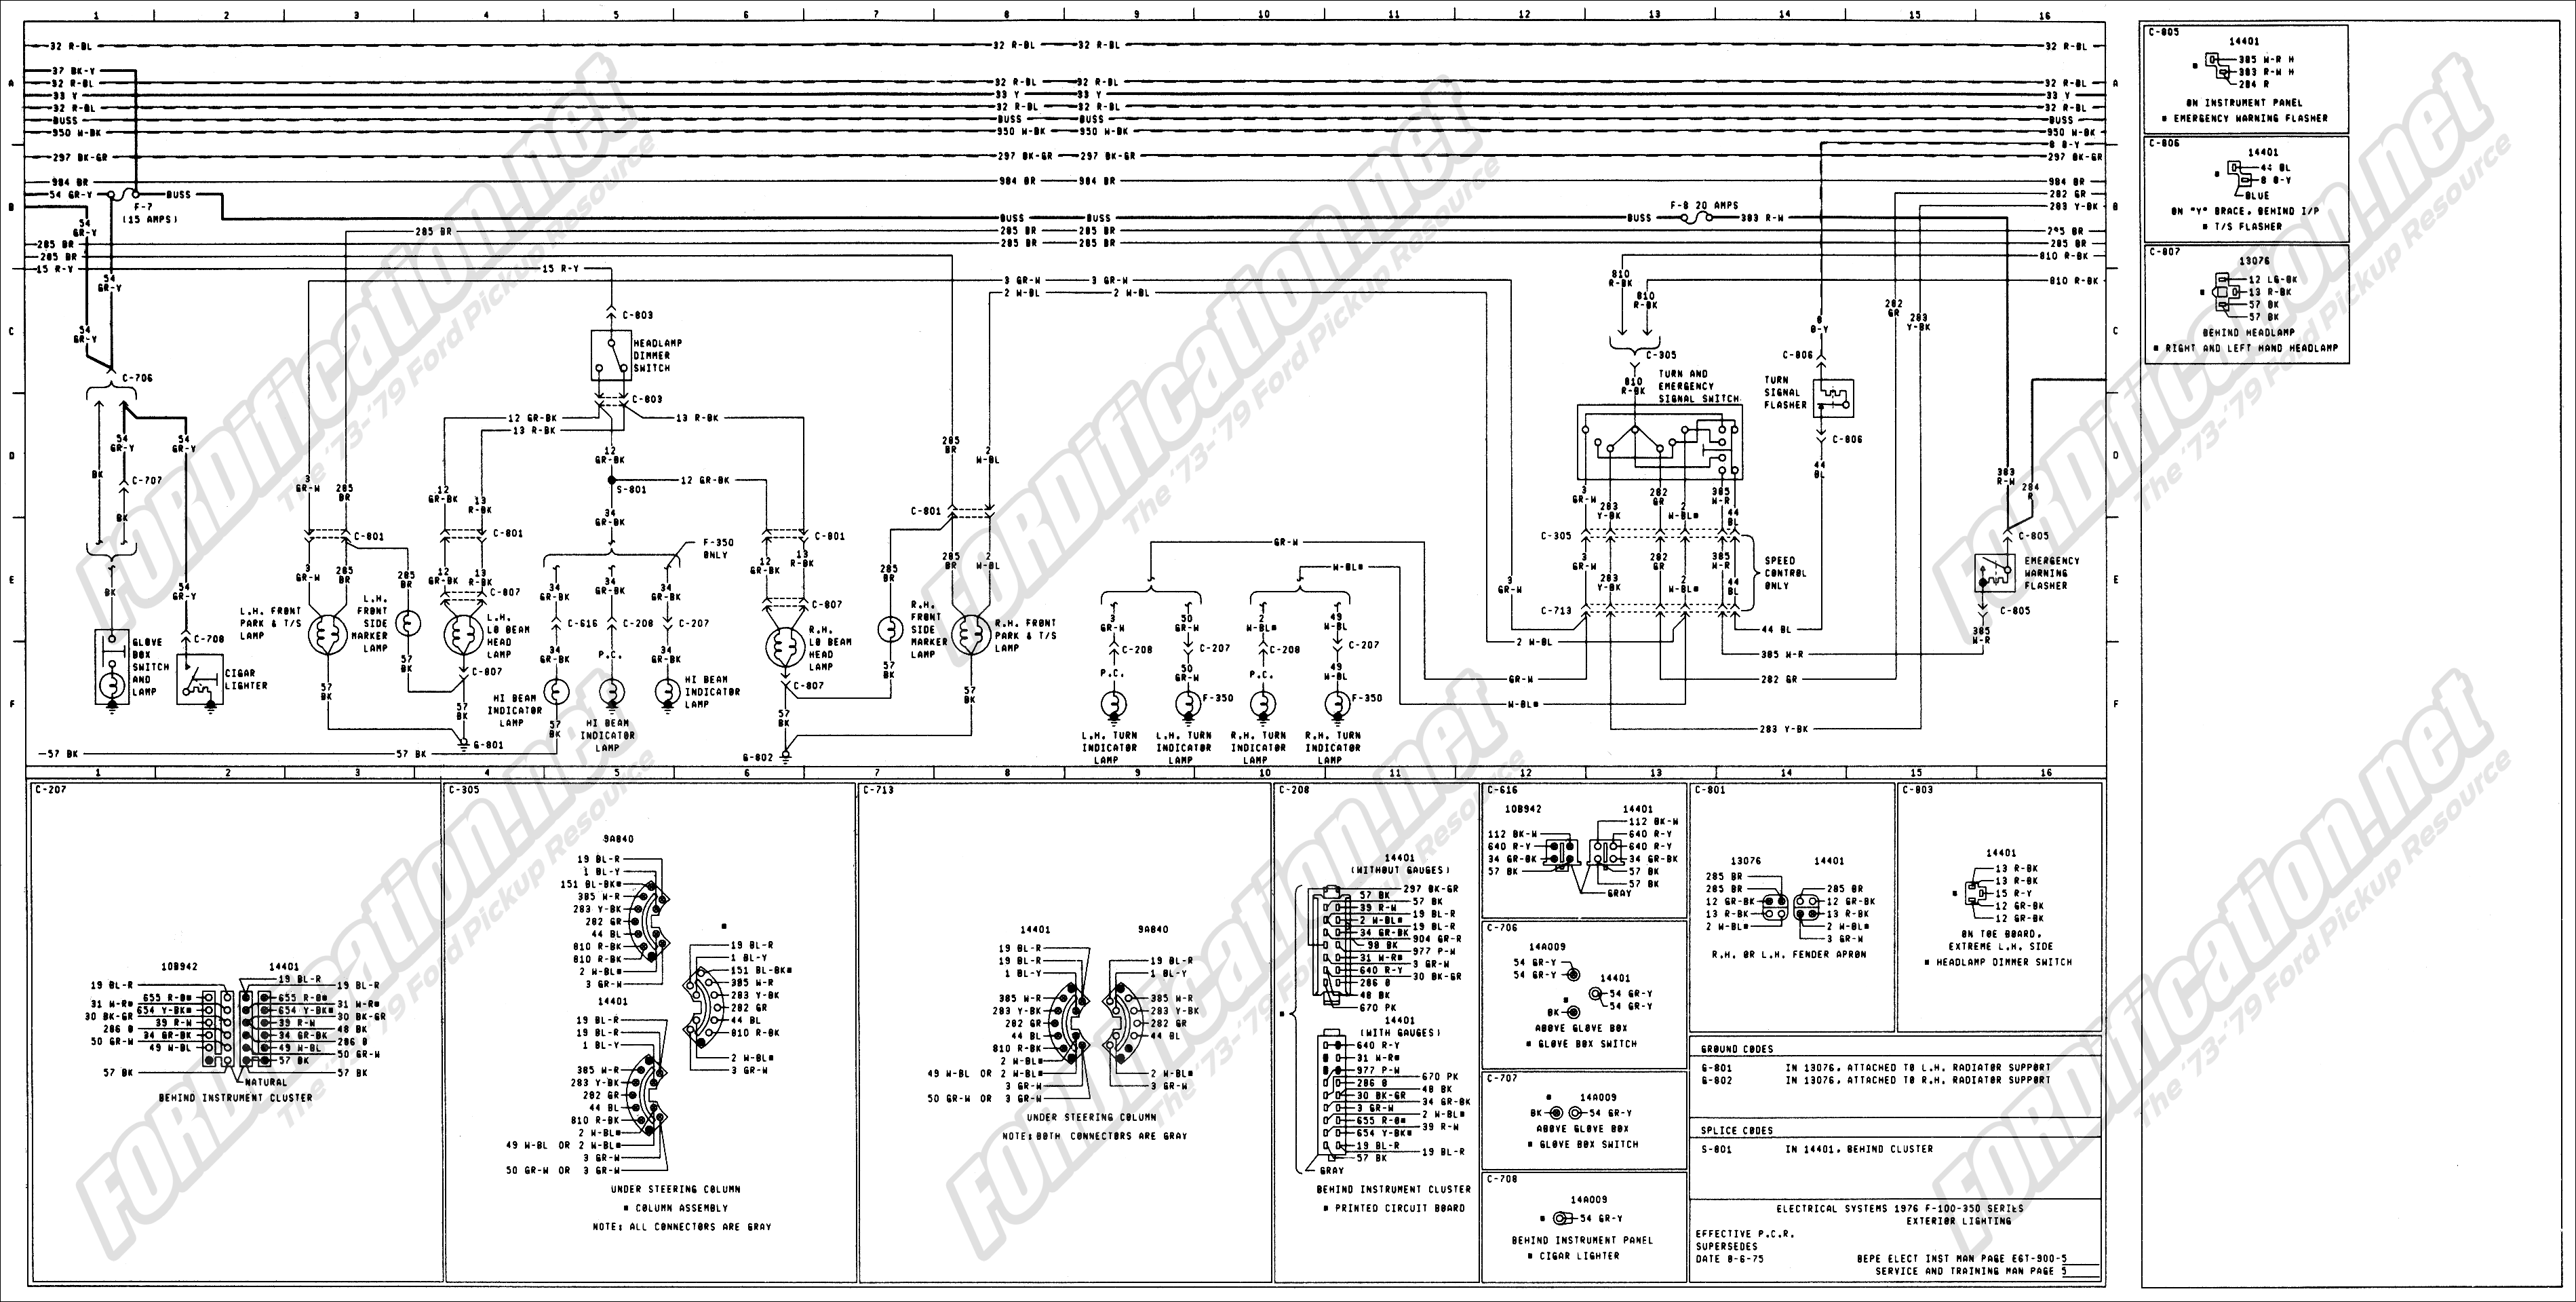 Wiring Diagram Lights In Series 1973 1979 Ford Truck Diagrams Schematics